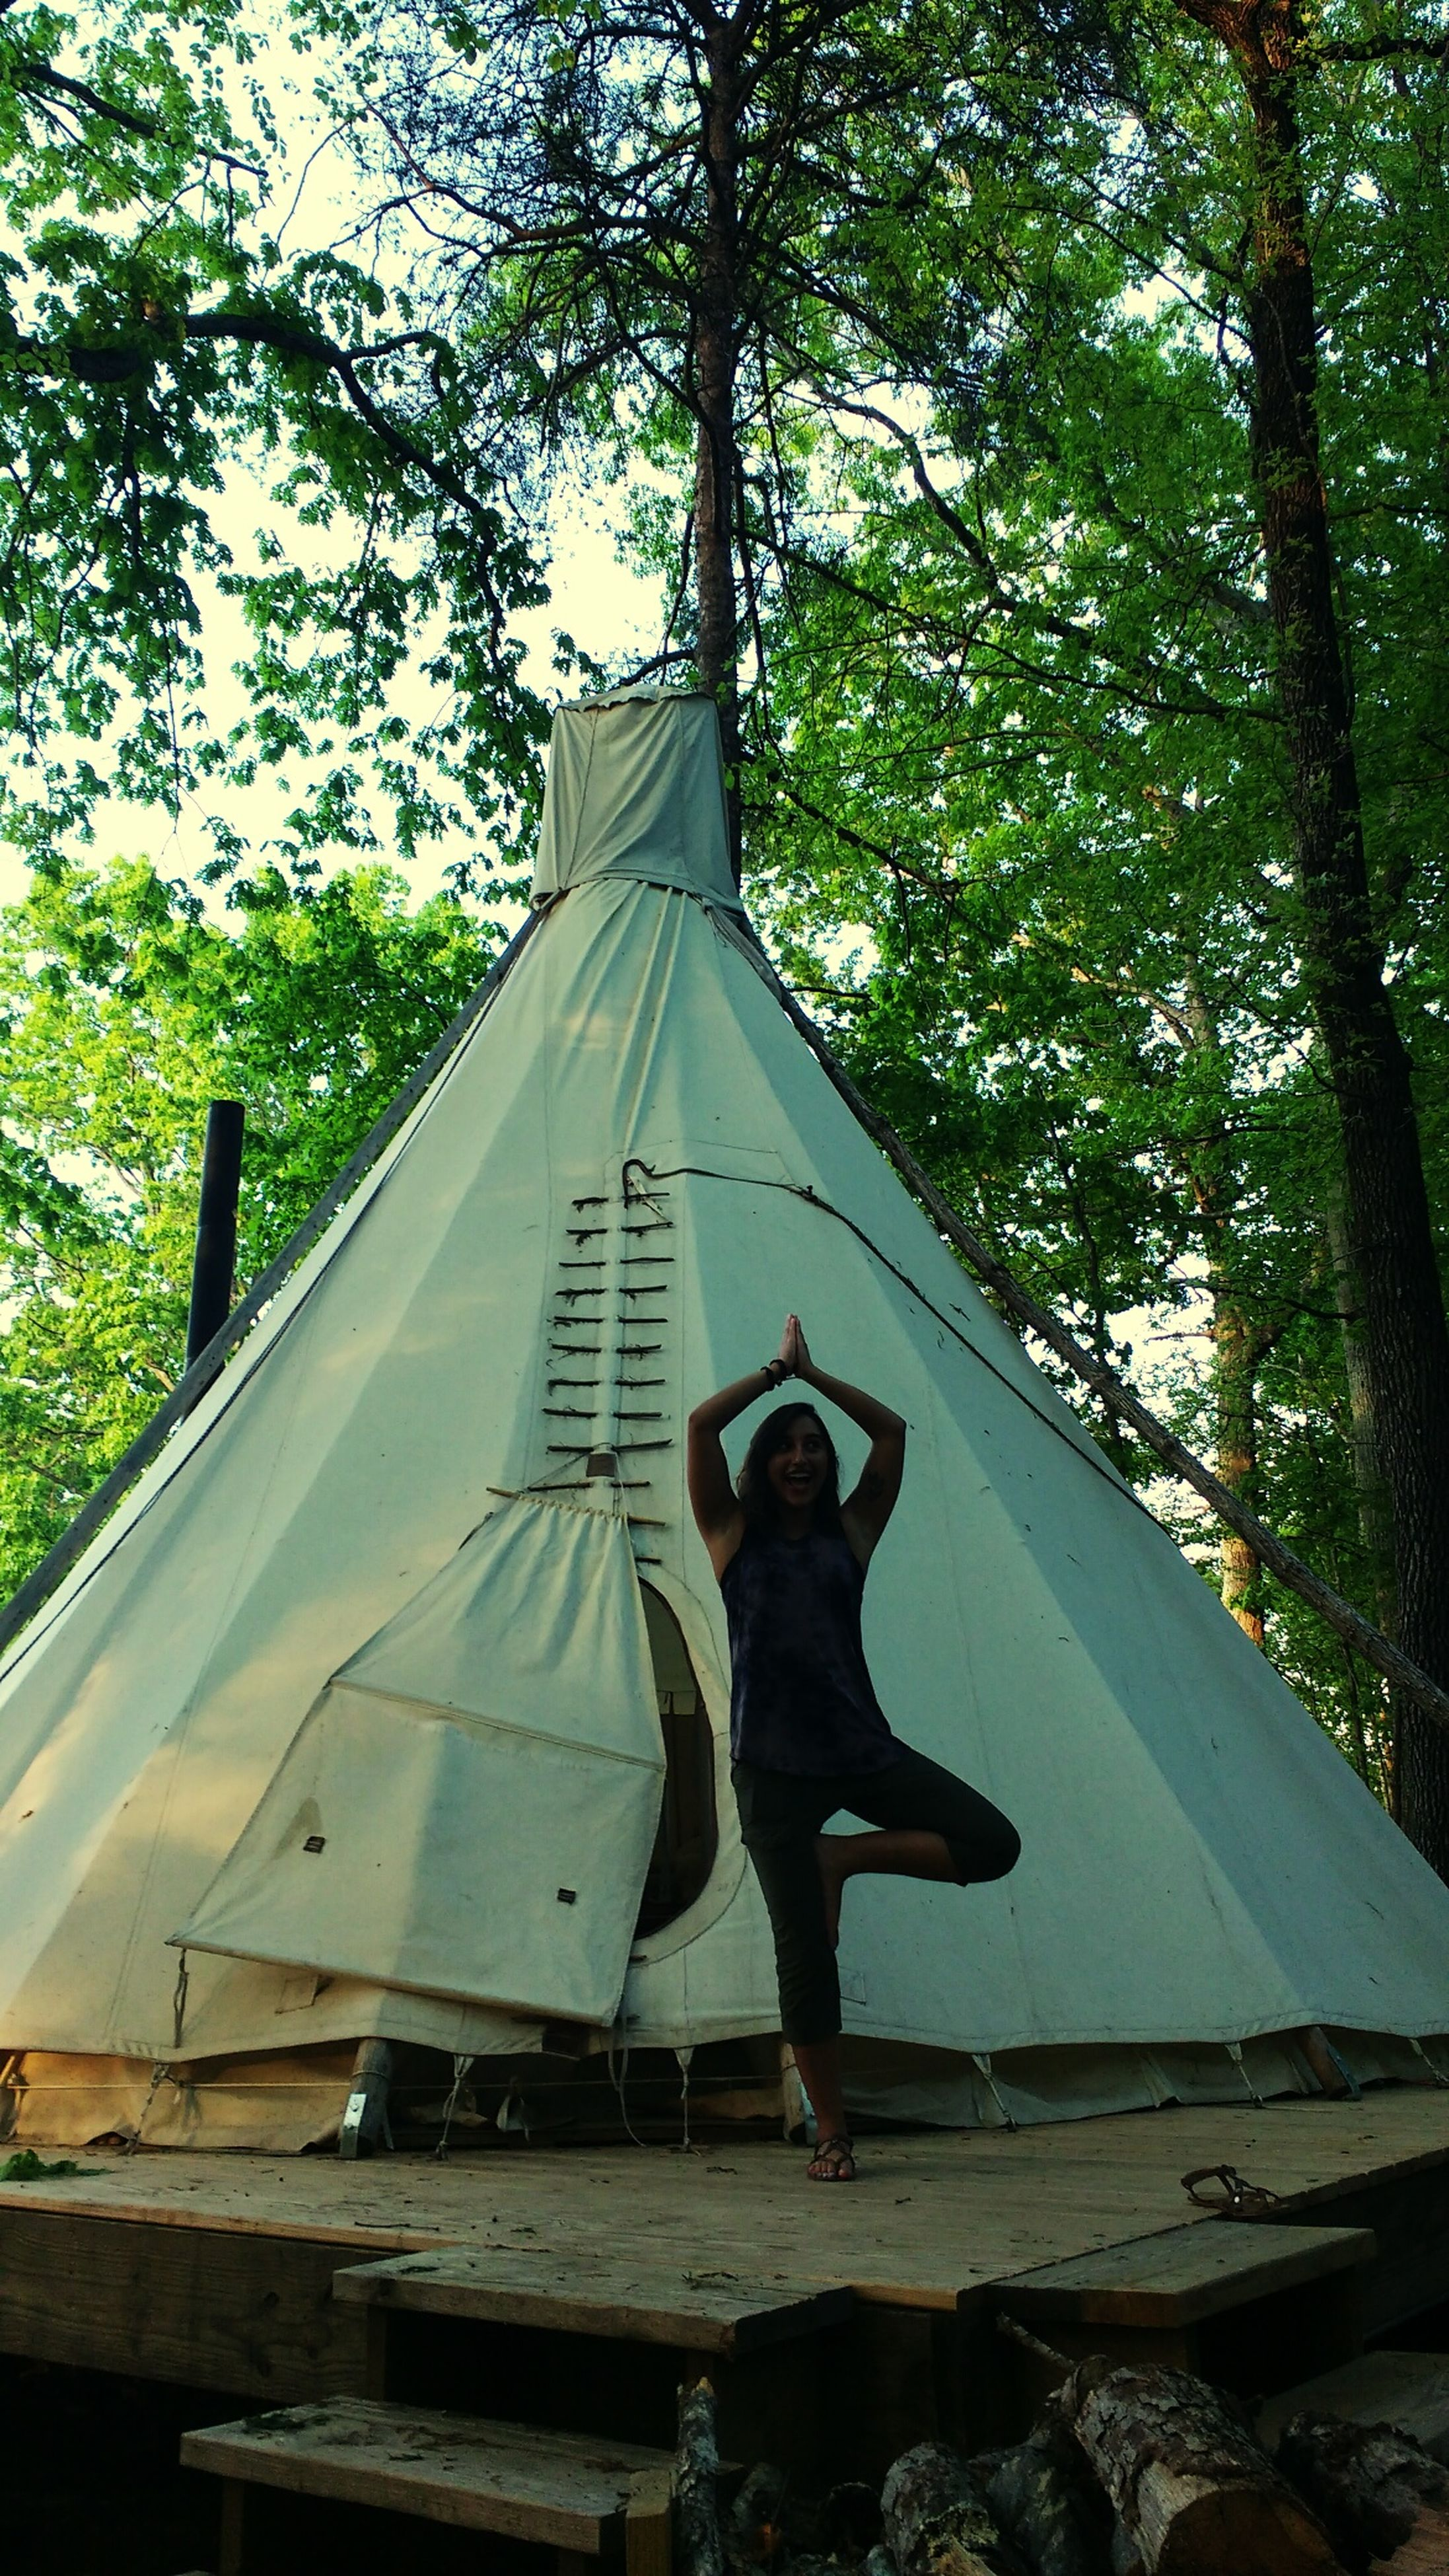 tree, real people, one person, full length, day, lifestyles, leisure activity, outdoors, tent, men, nature, sky, people